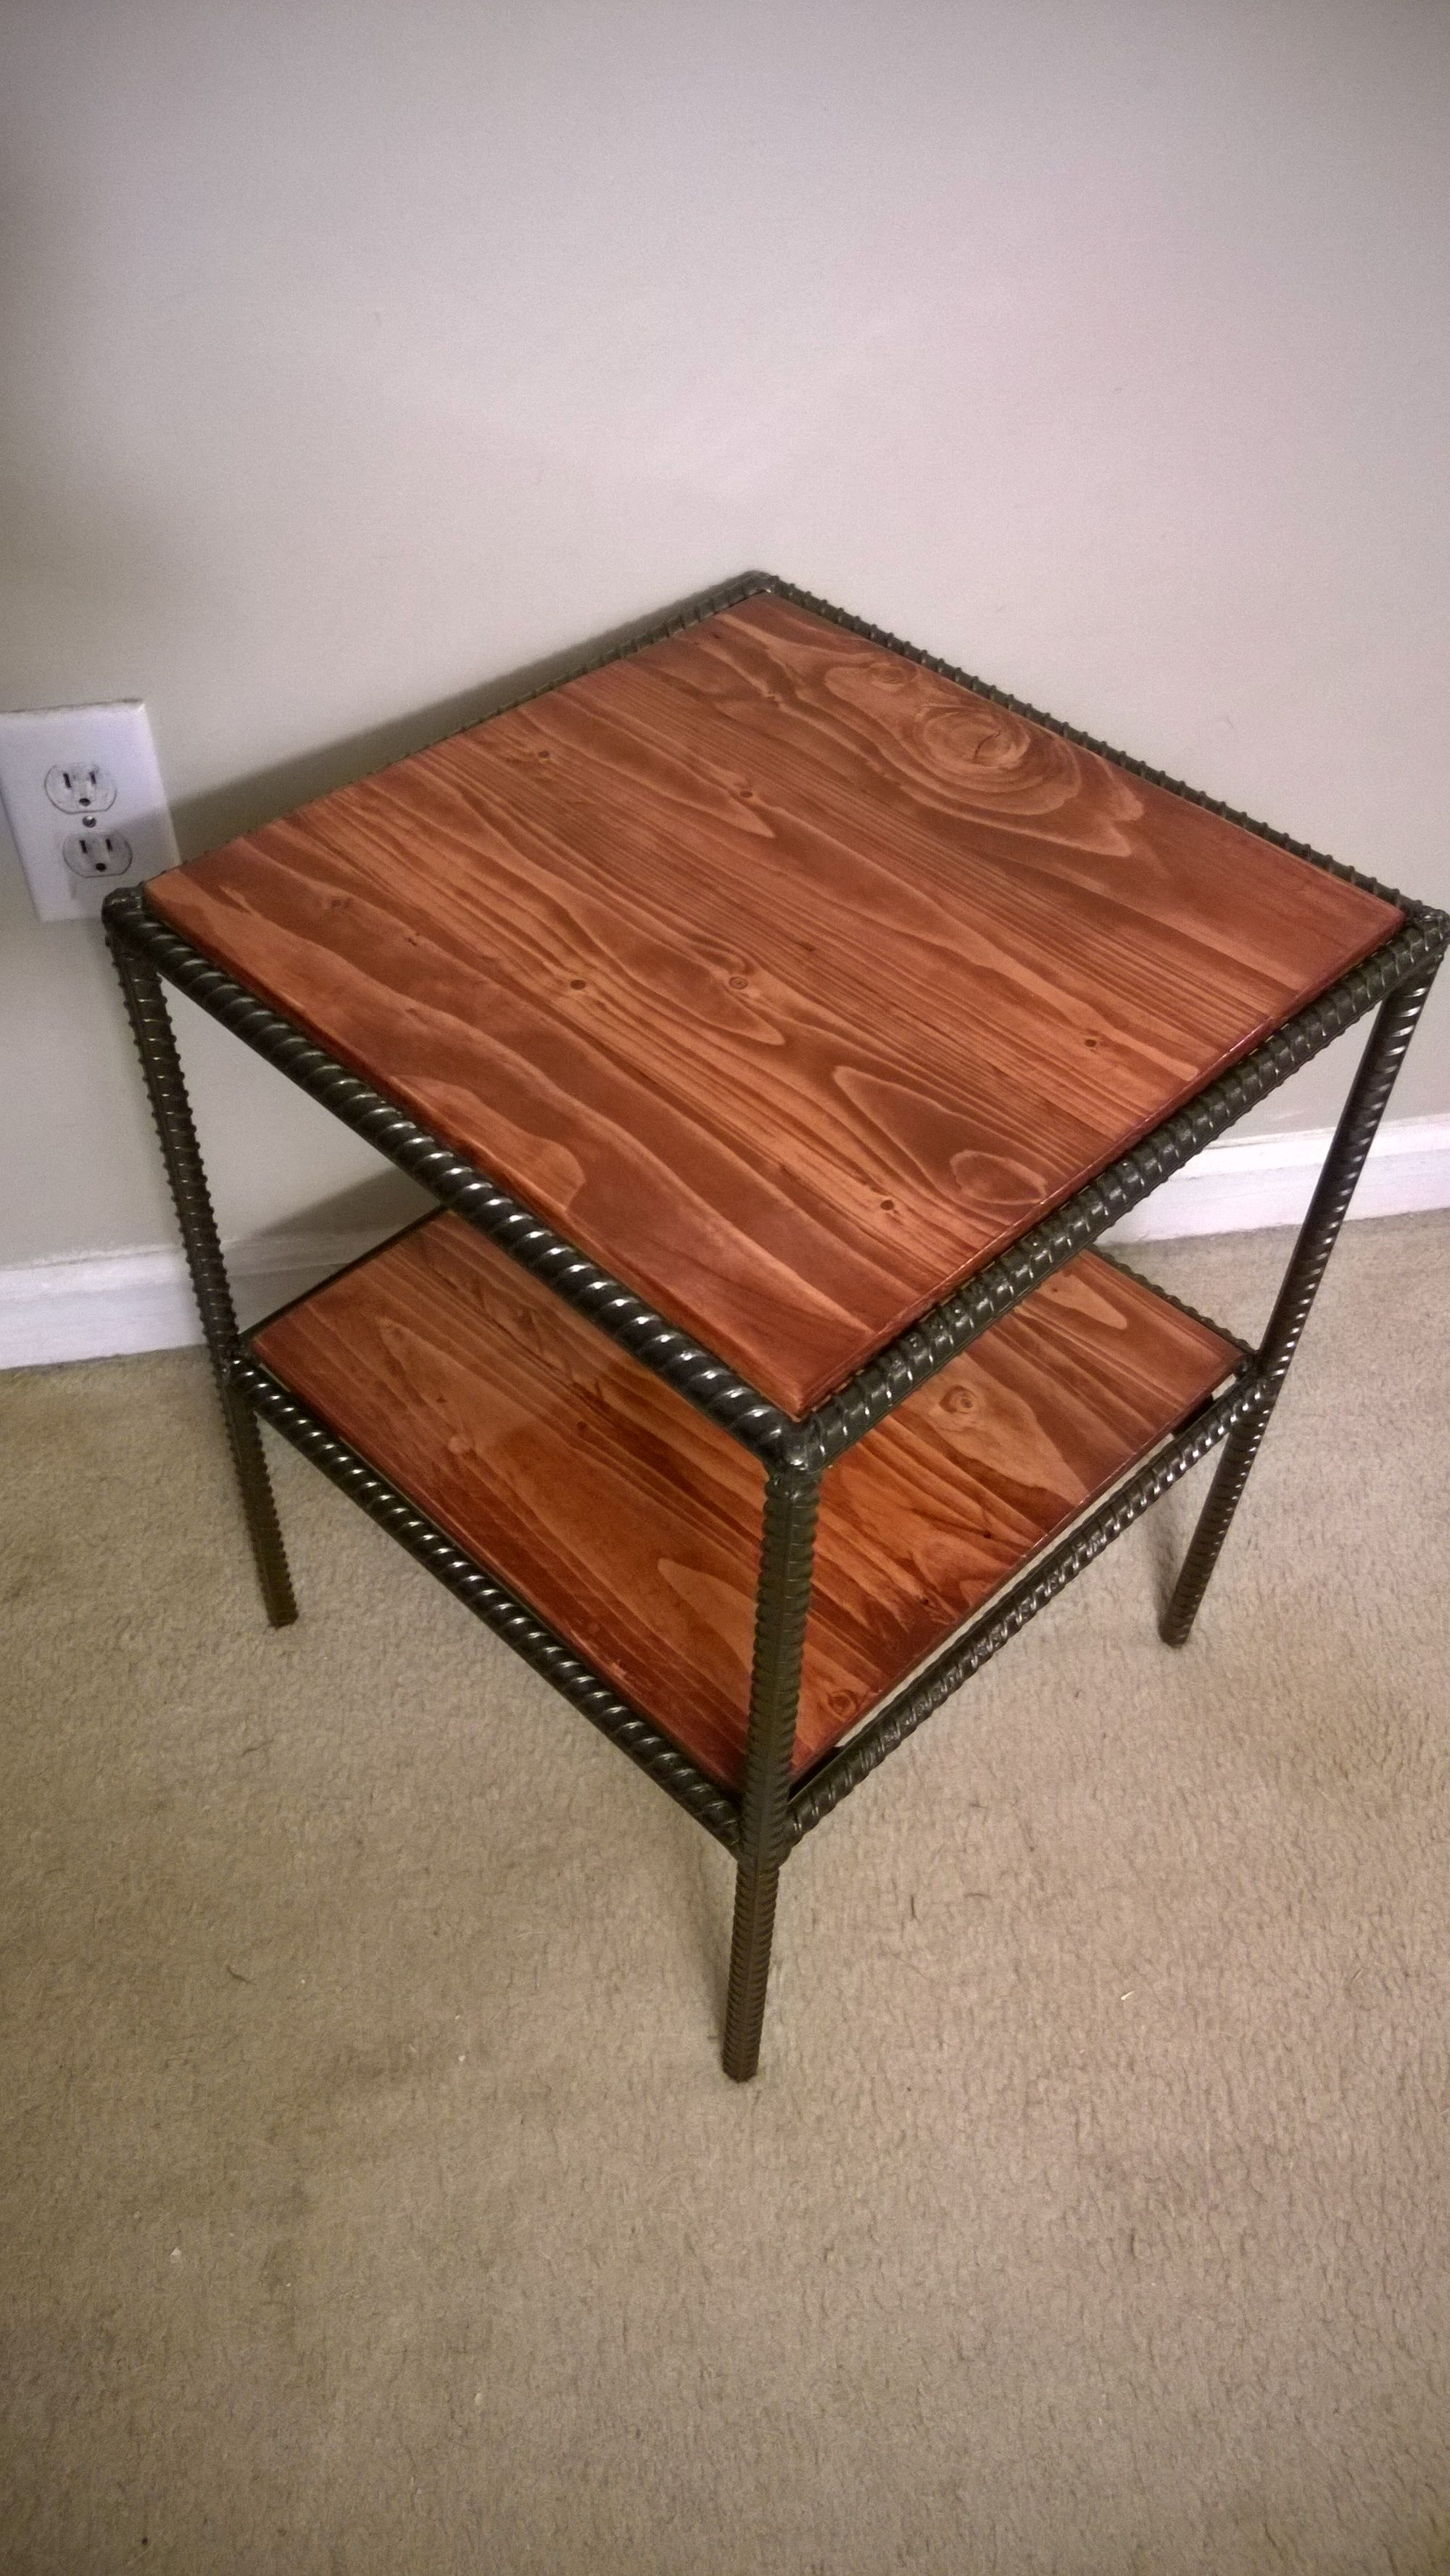 Rebar and pallet wood side table DIY and Crafts